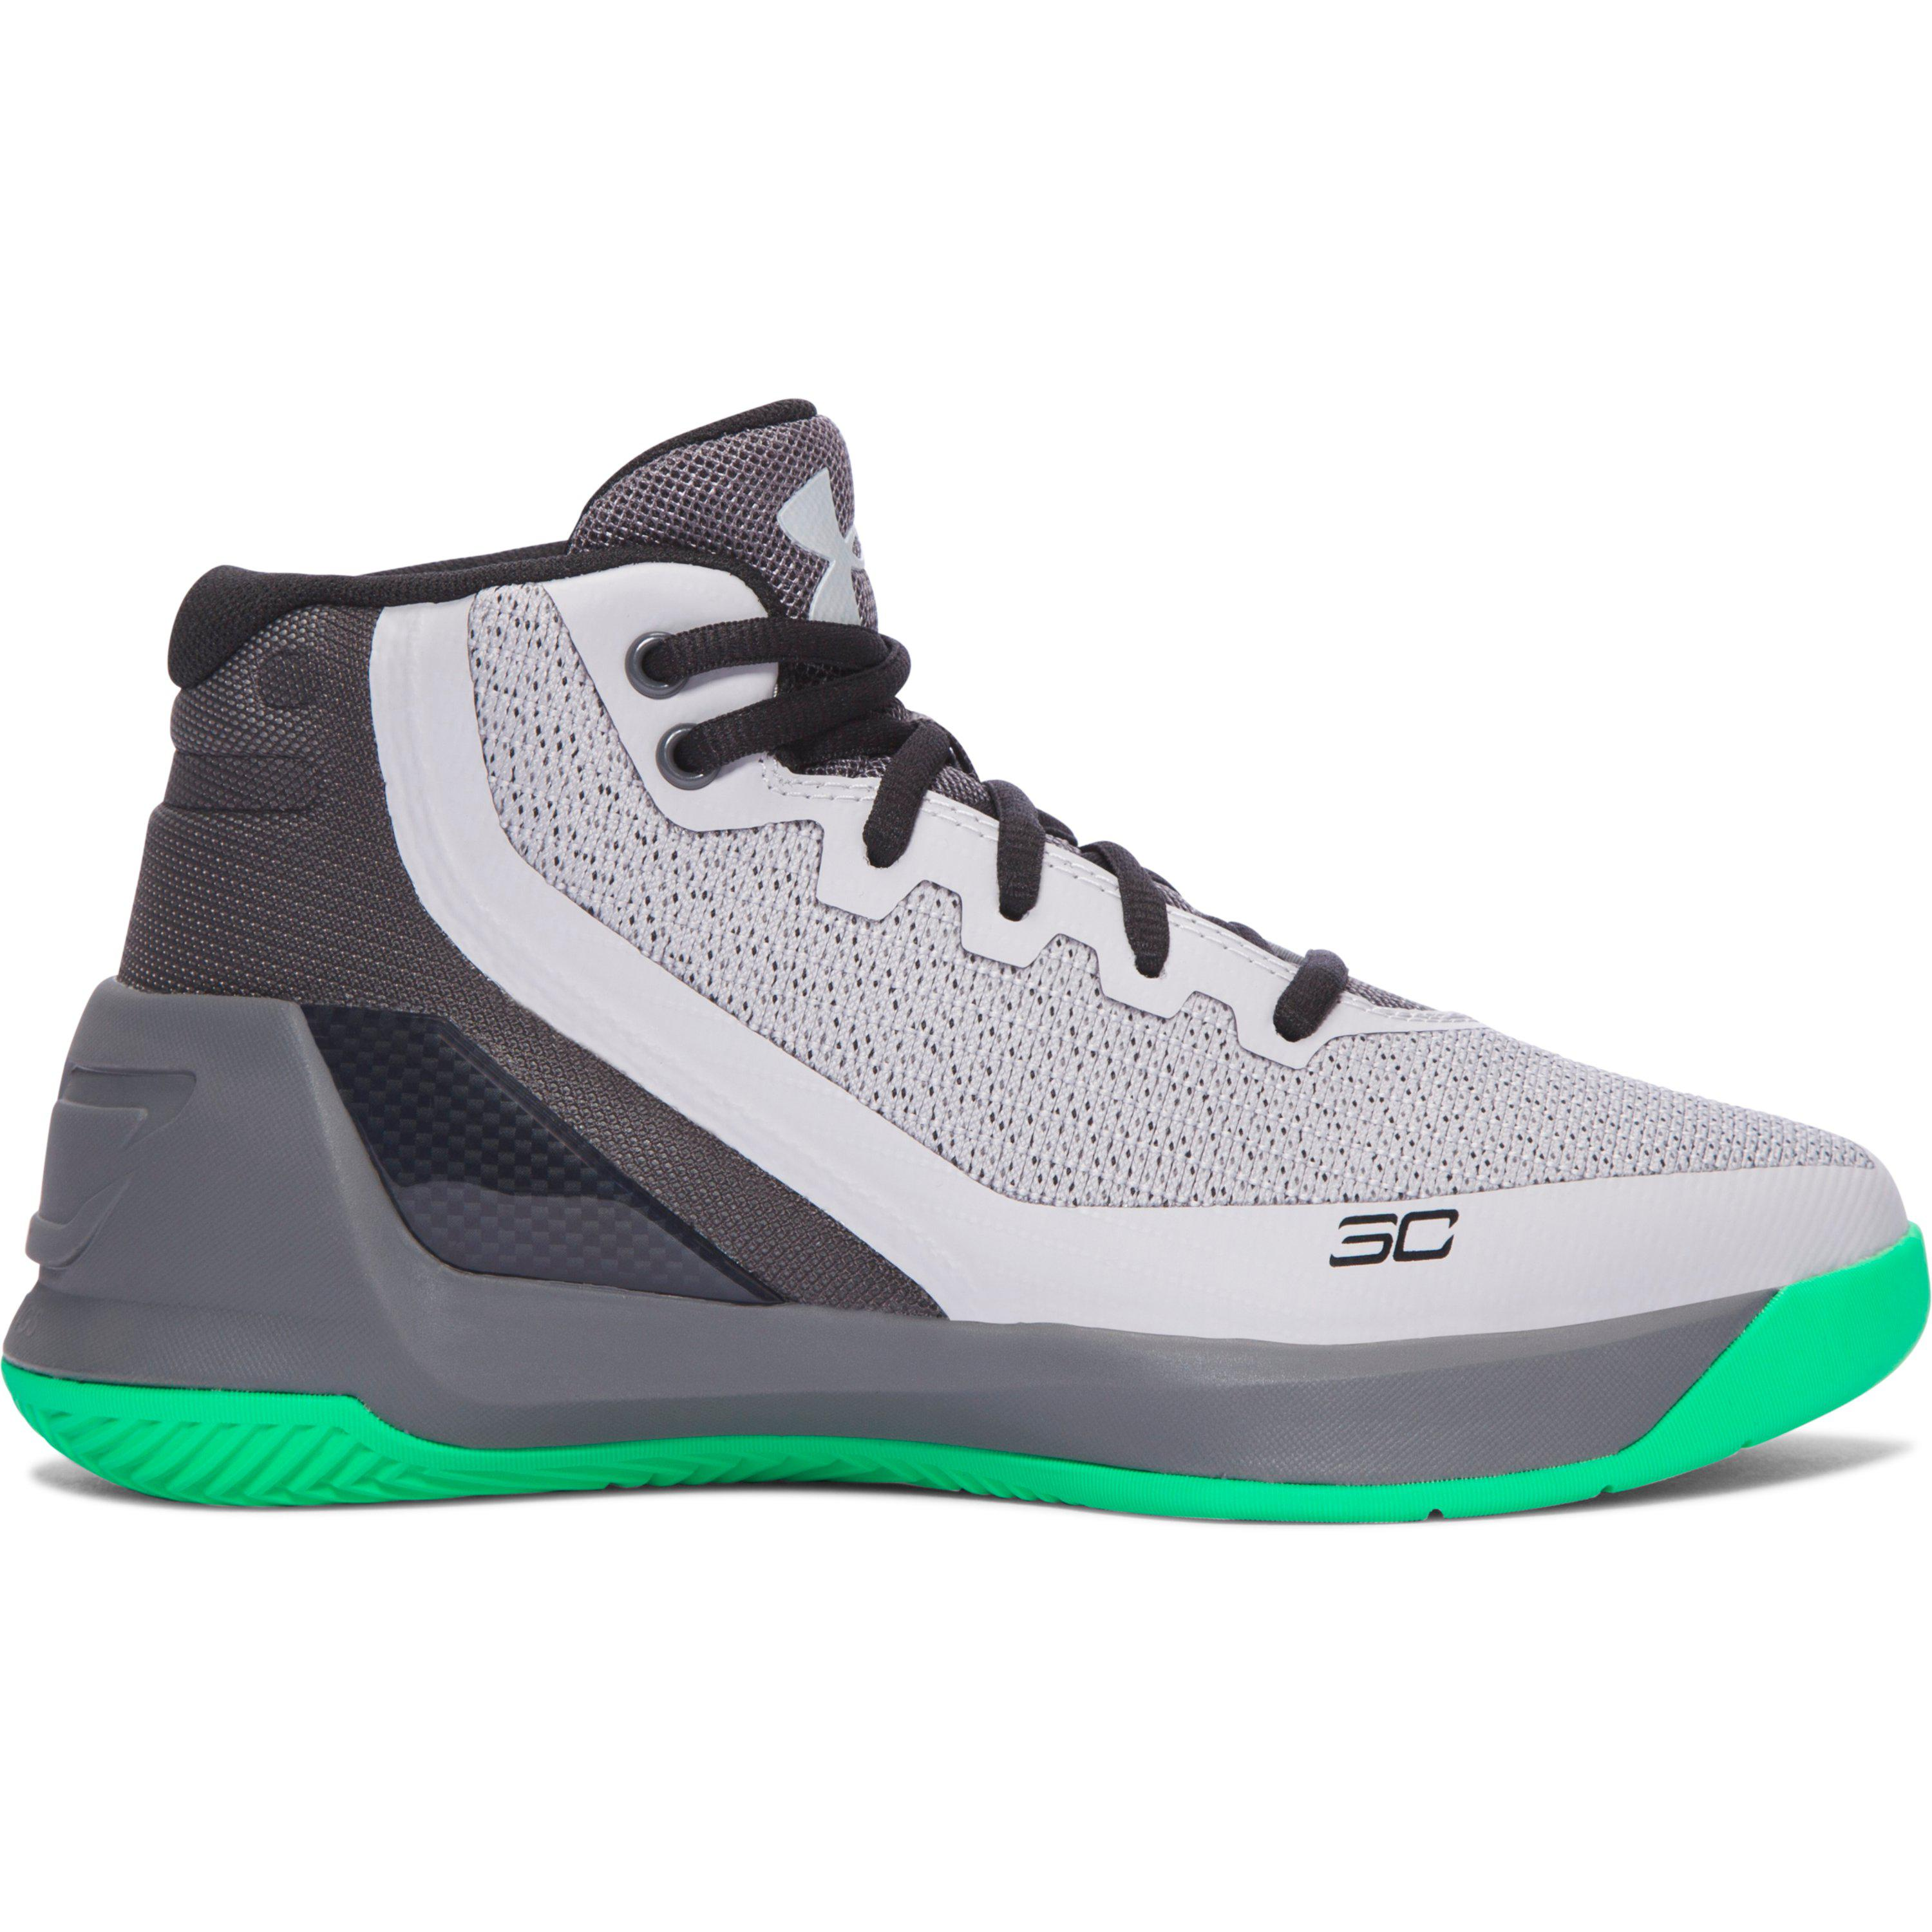 3c38d98c528 Lyst - Under Armour Pre-school Ua Curry 3 Basketball Shoes in Gray ...